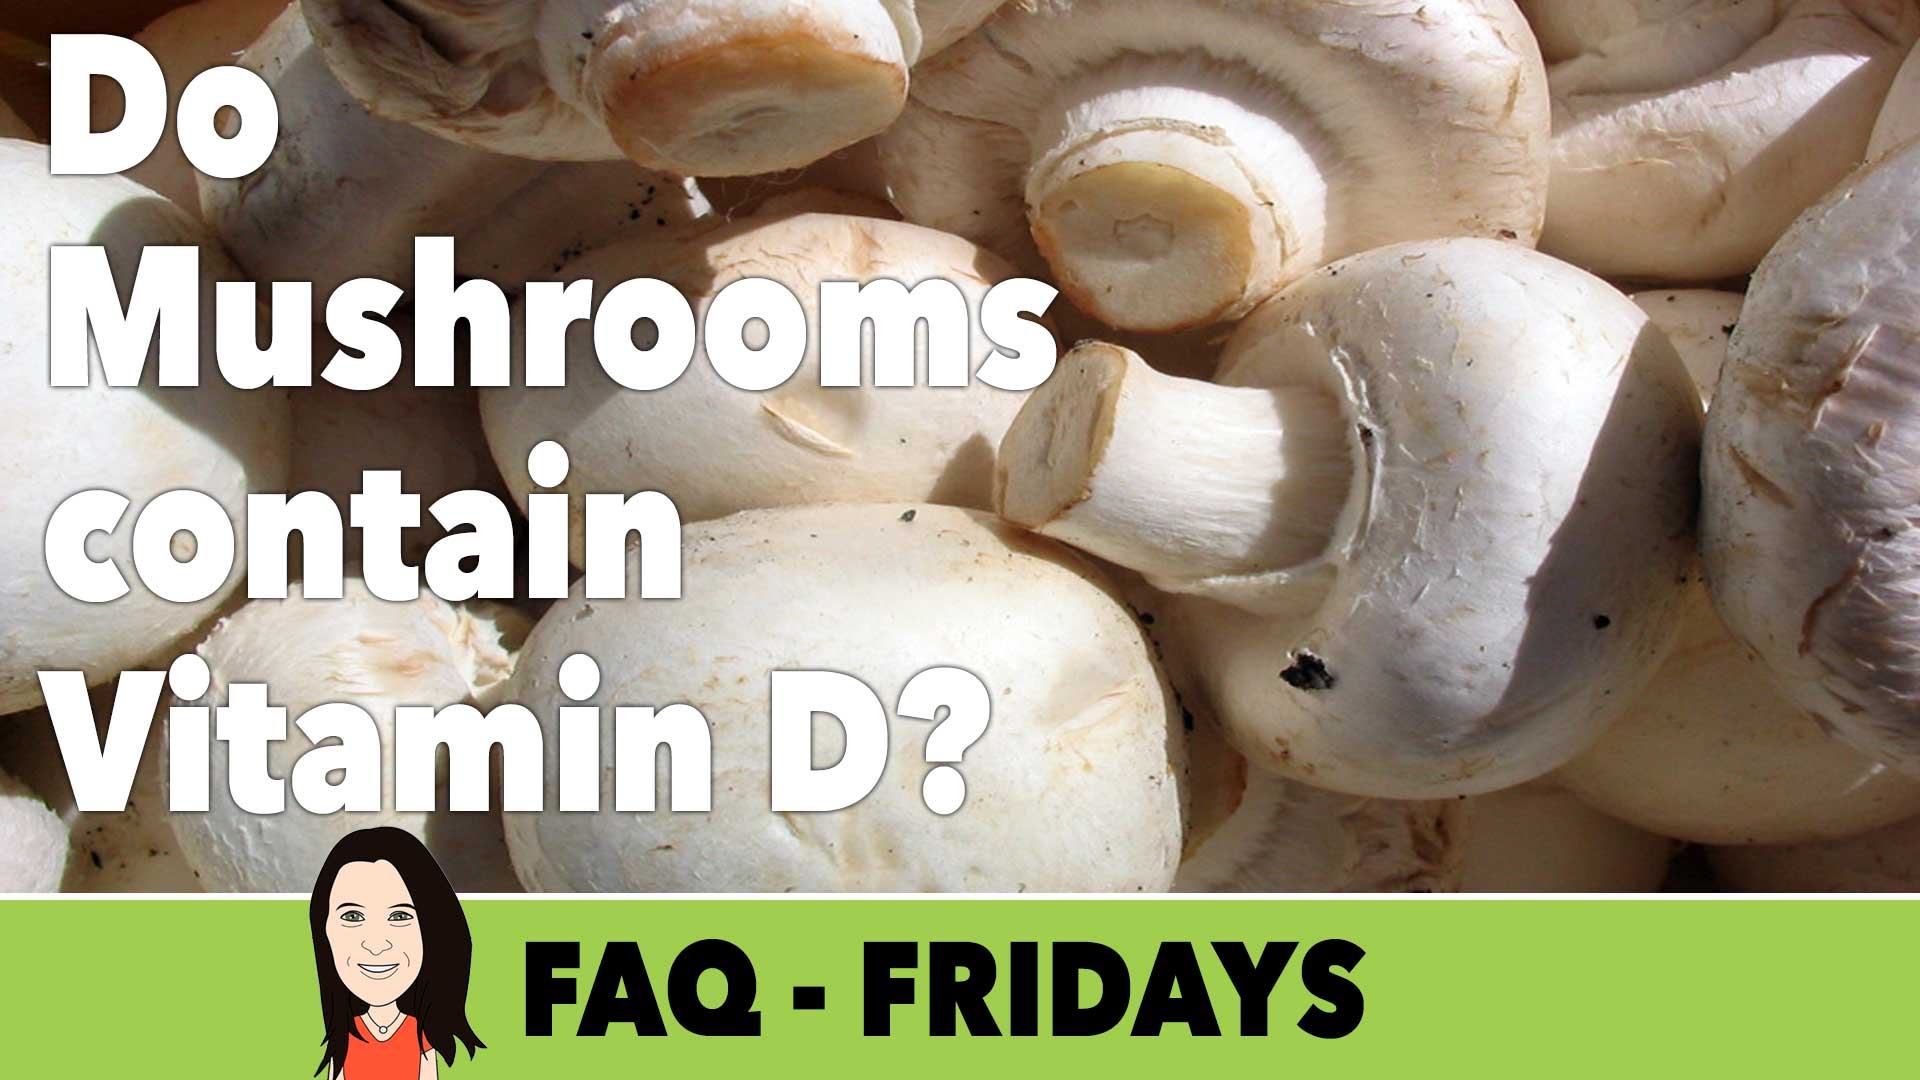 do mushrooms contain vitamin D